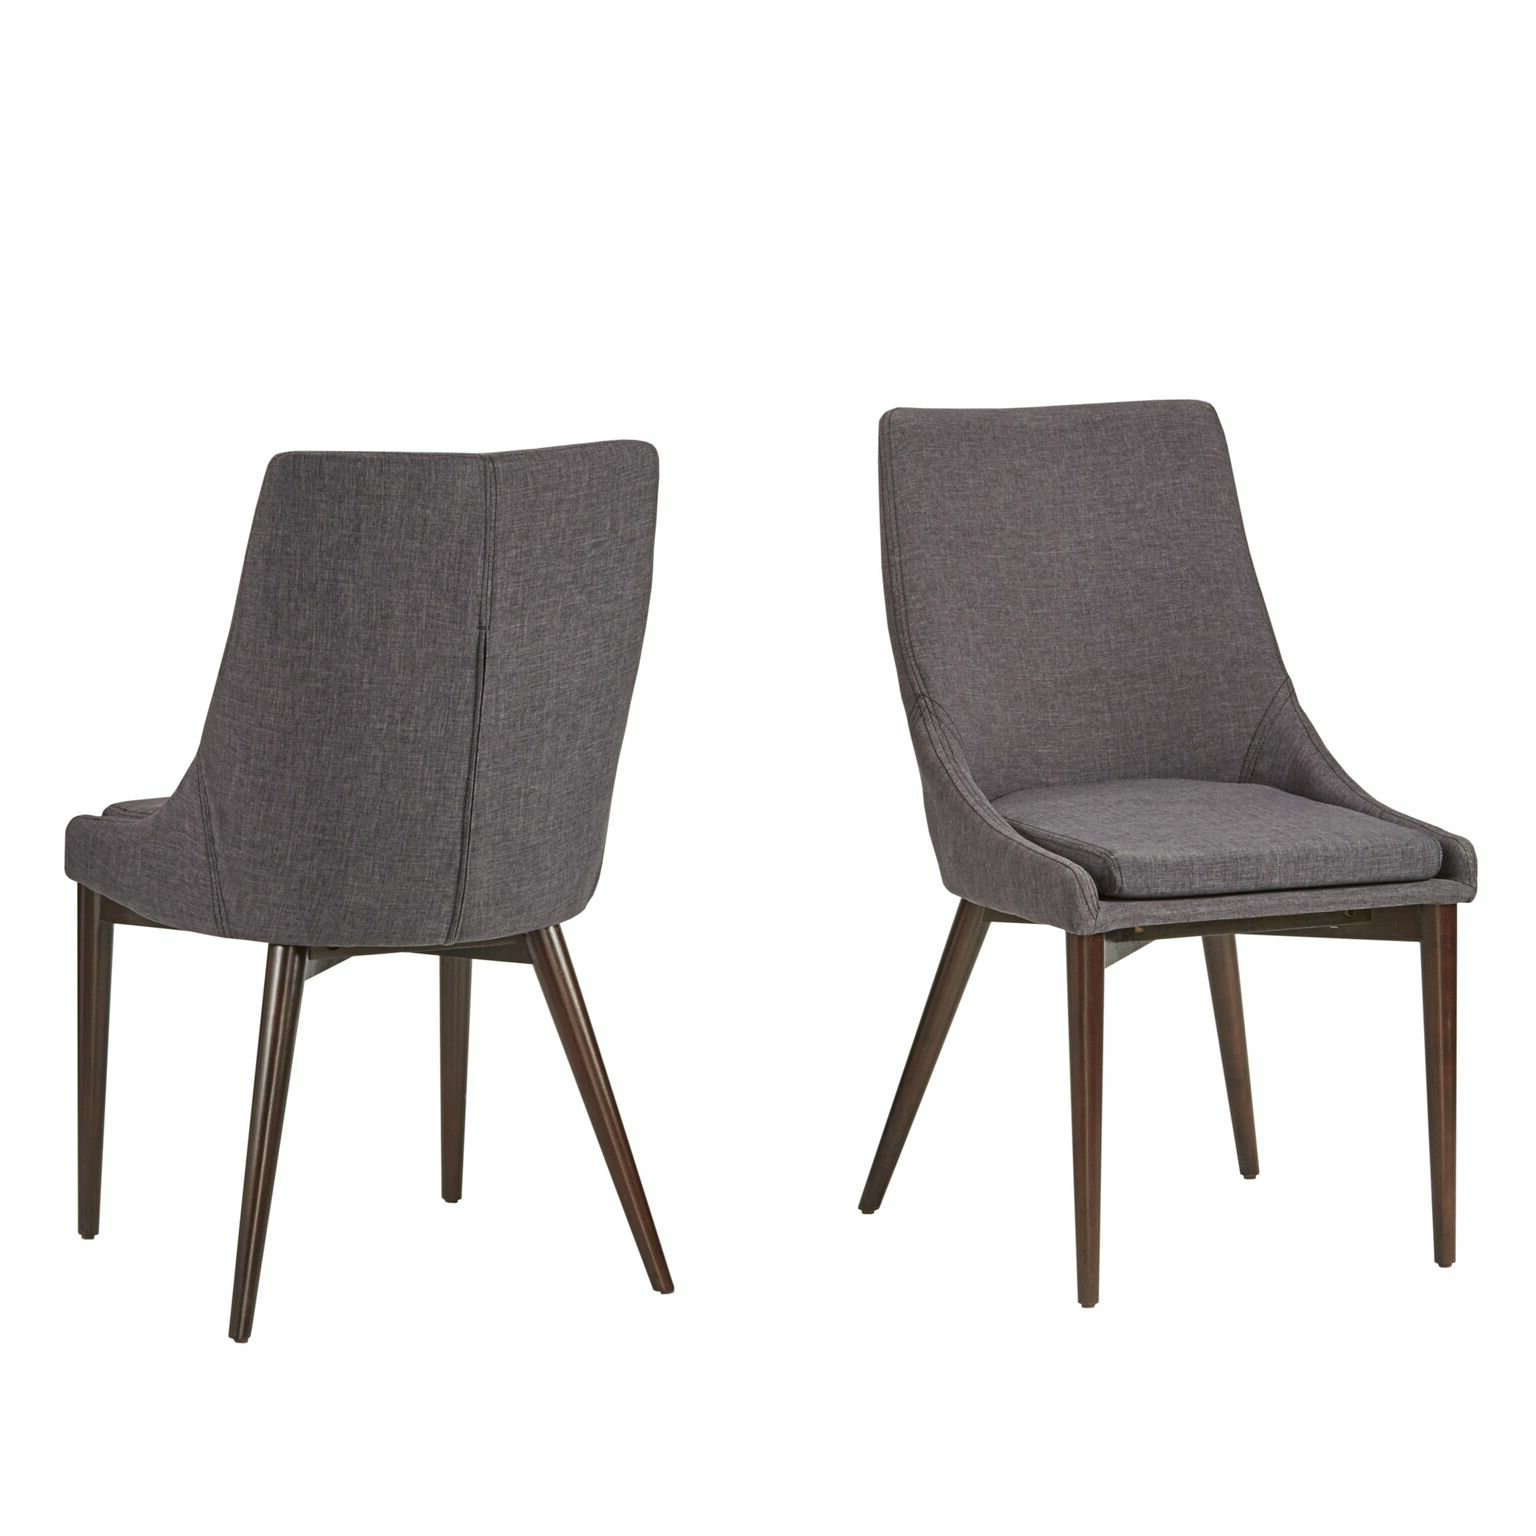 2019 Blaisdell Upholstered Dining Chair Regarding Aaliyah Parsons Chairs (View 10 of 20)